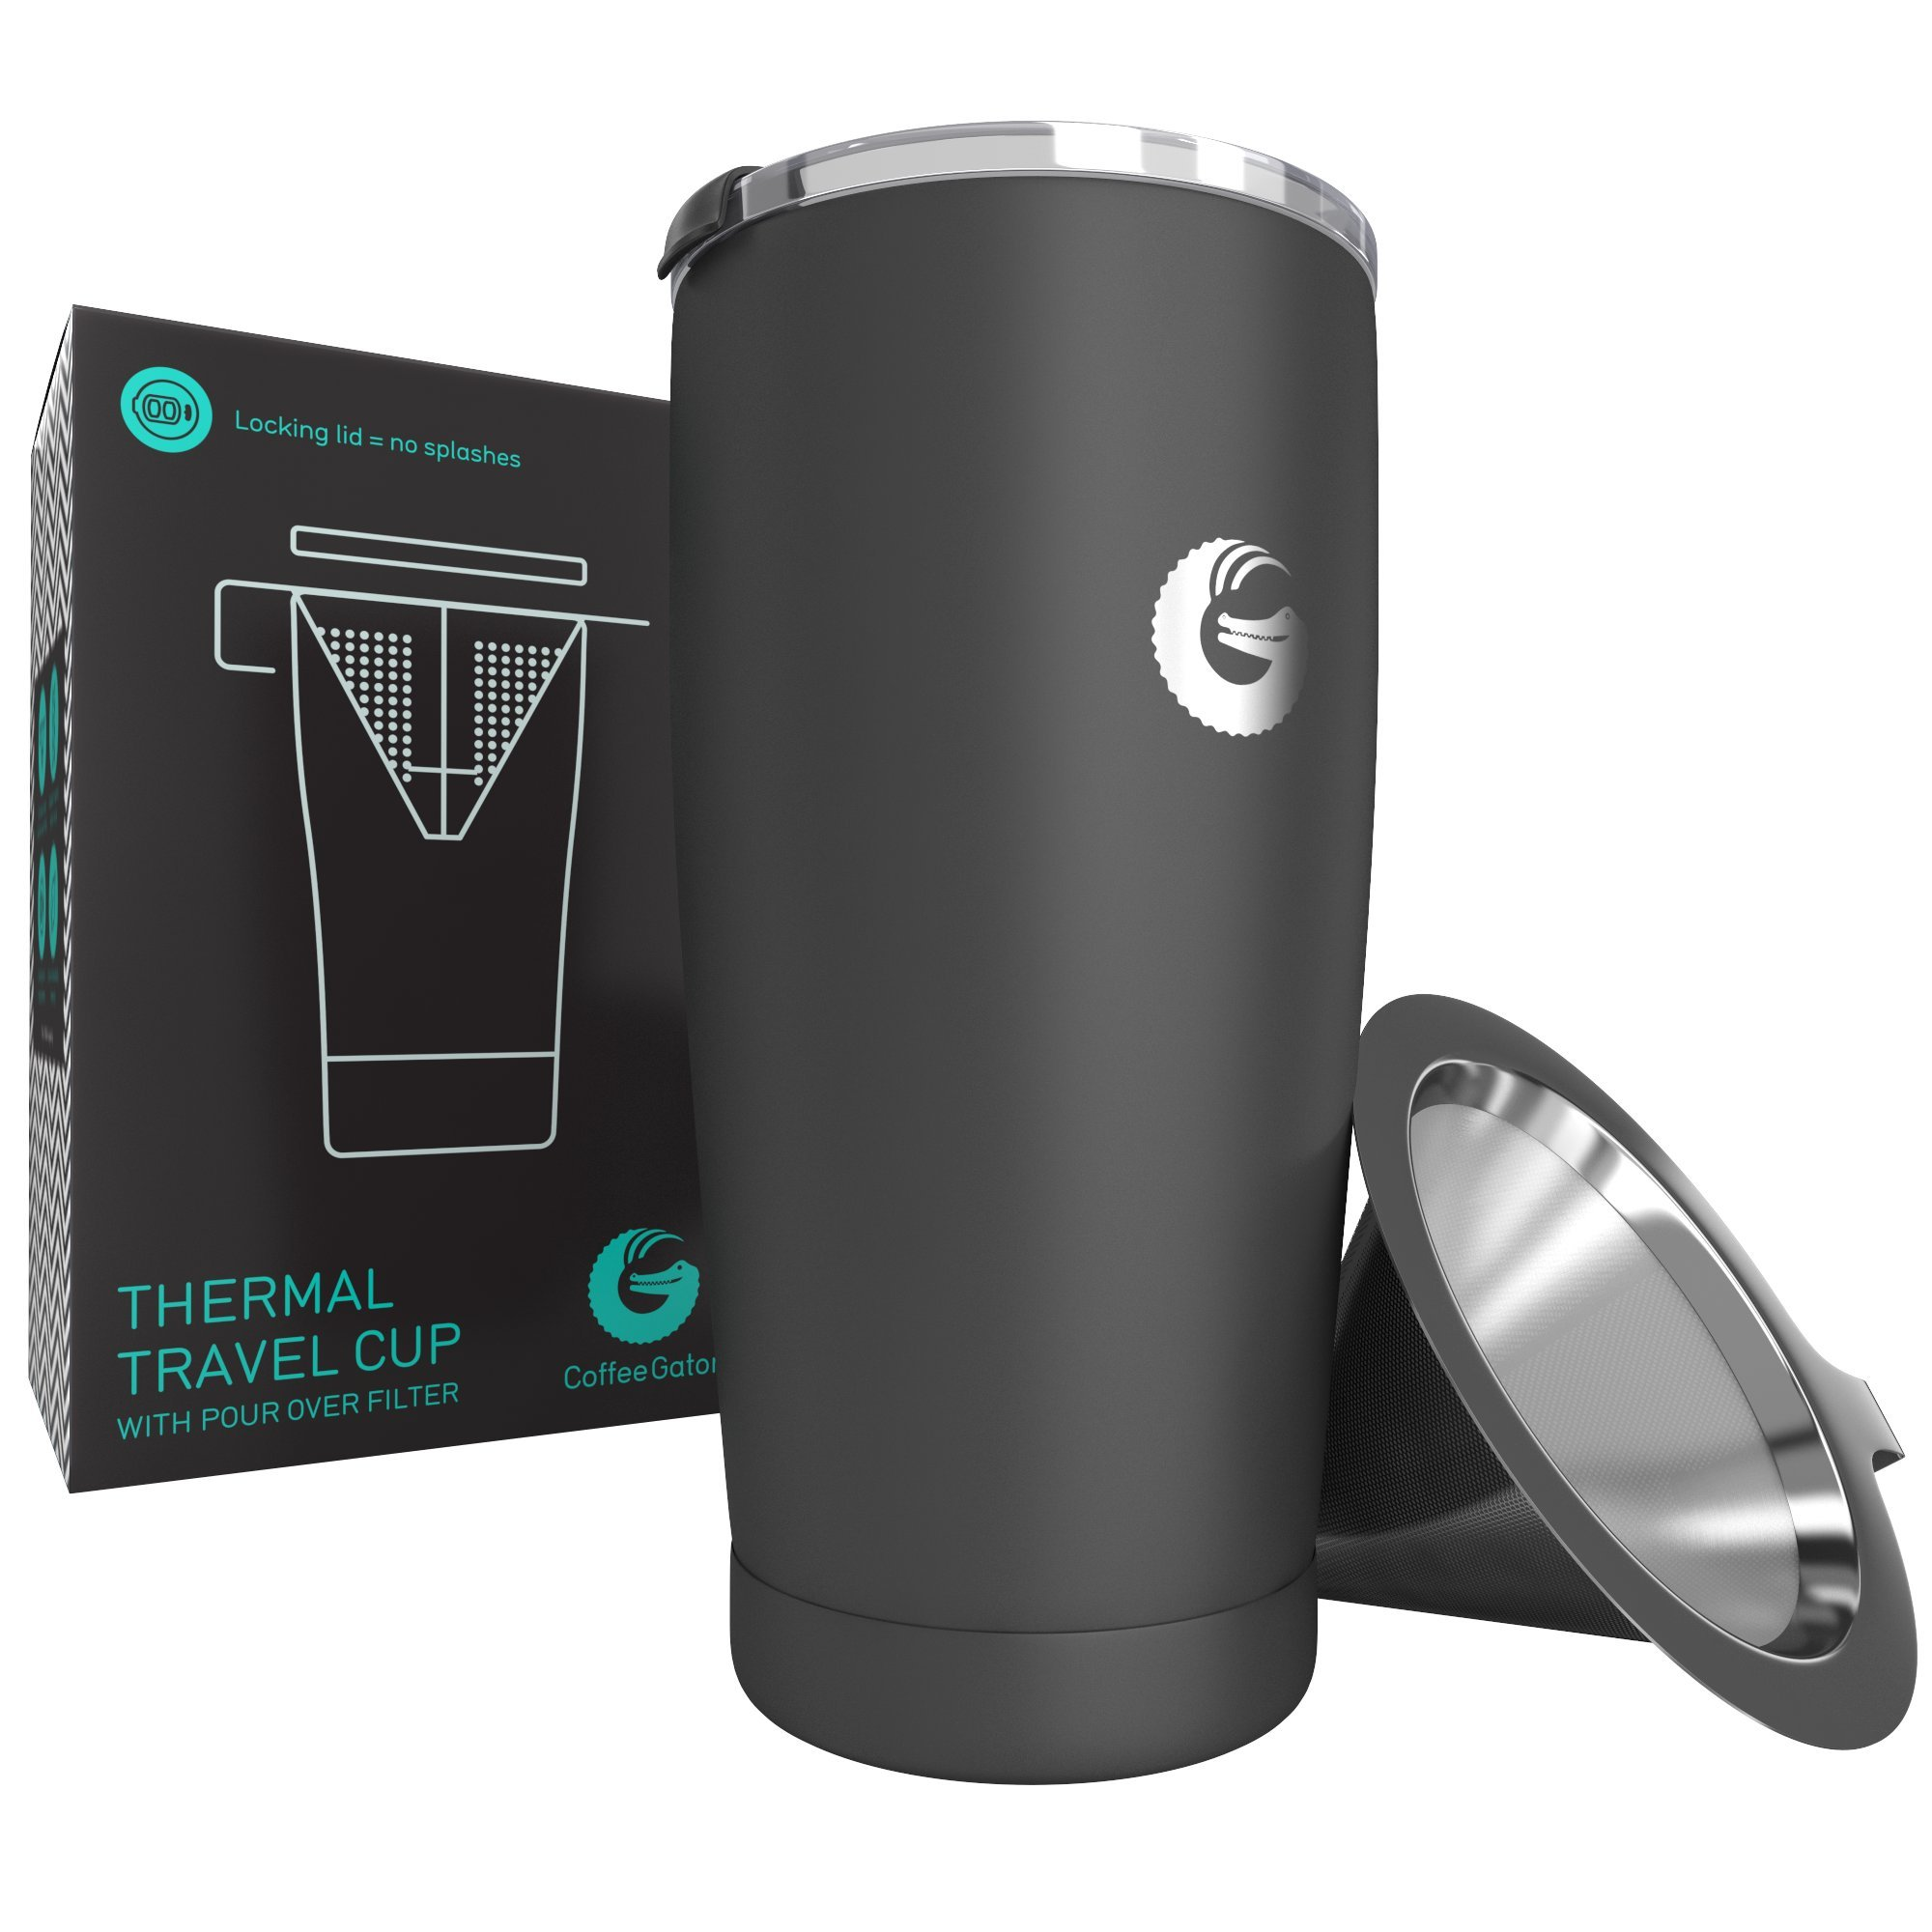 Personal Coffee Brewing Travel Mug - Vacuum Insulated Stainless Steel Pour Over Maker With Locking Lid - 17floz - By Coffee Gator